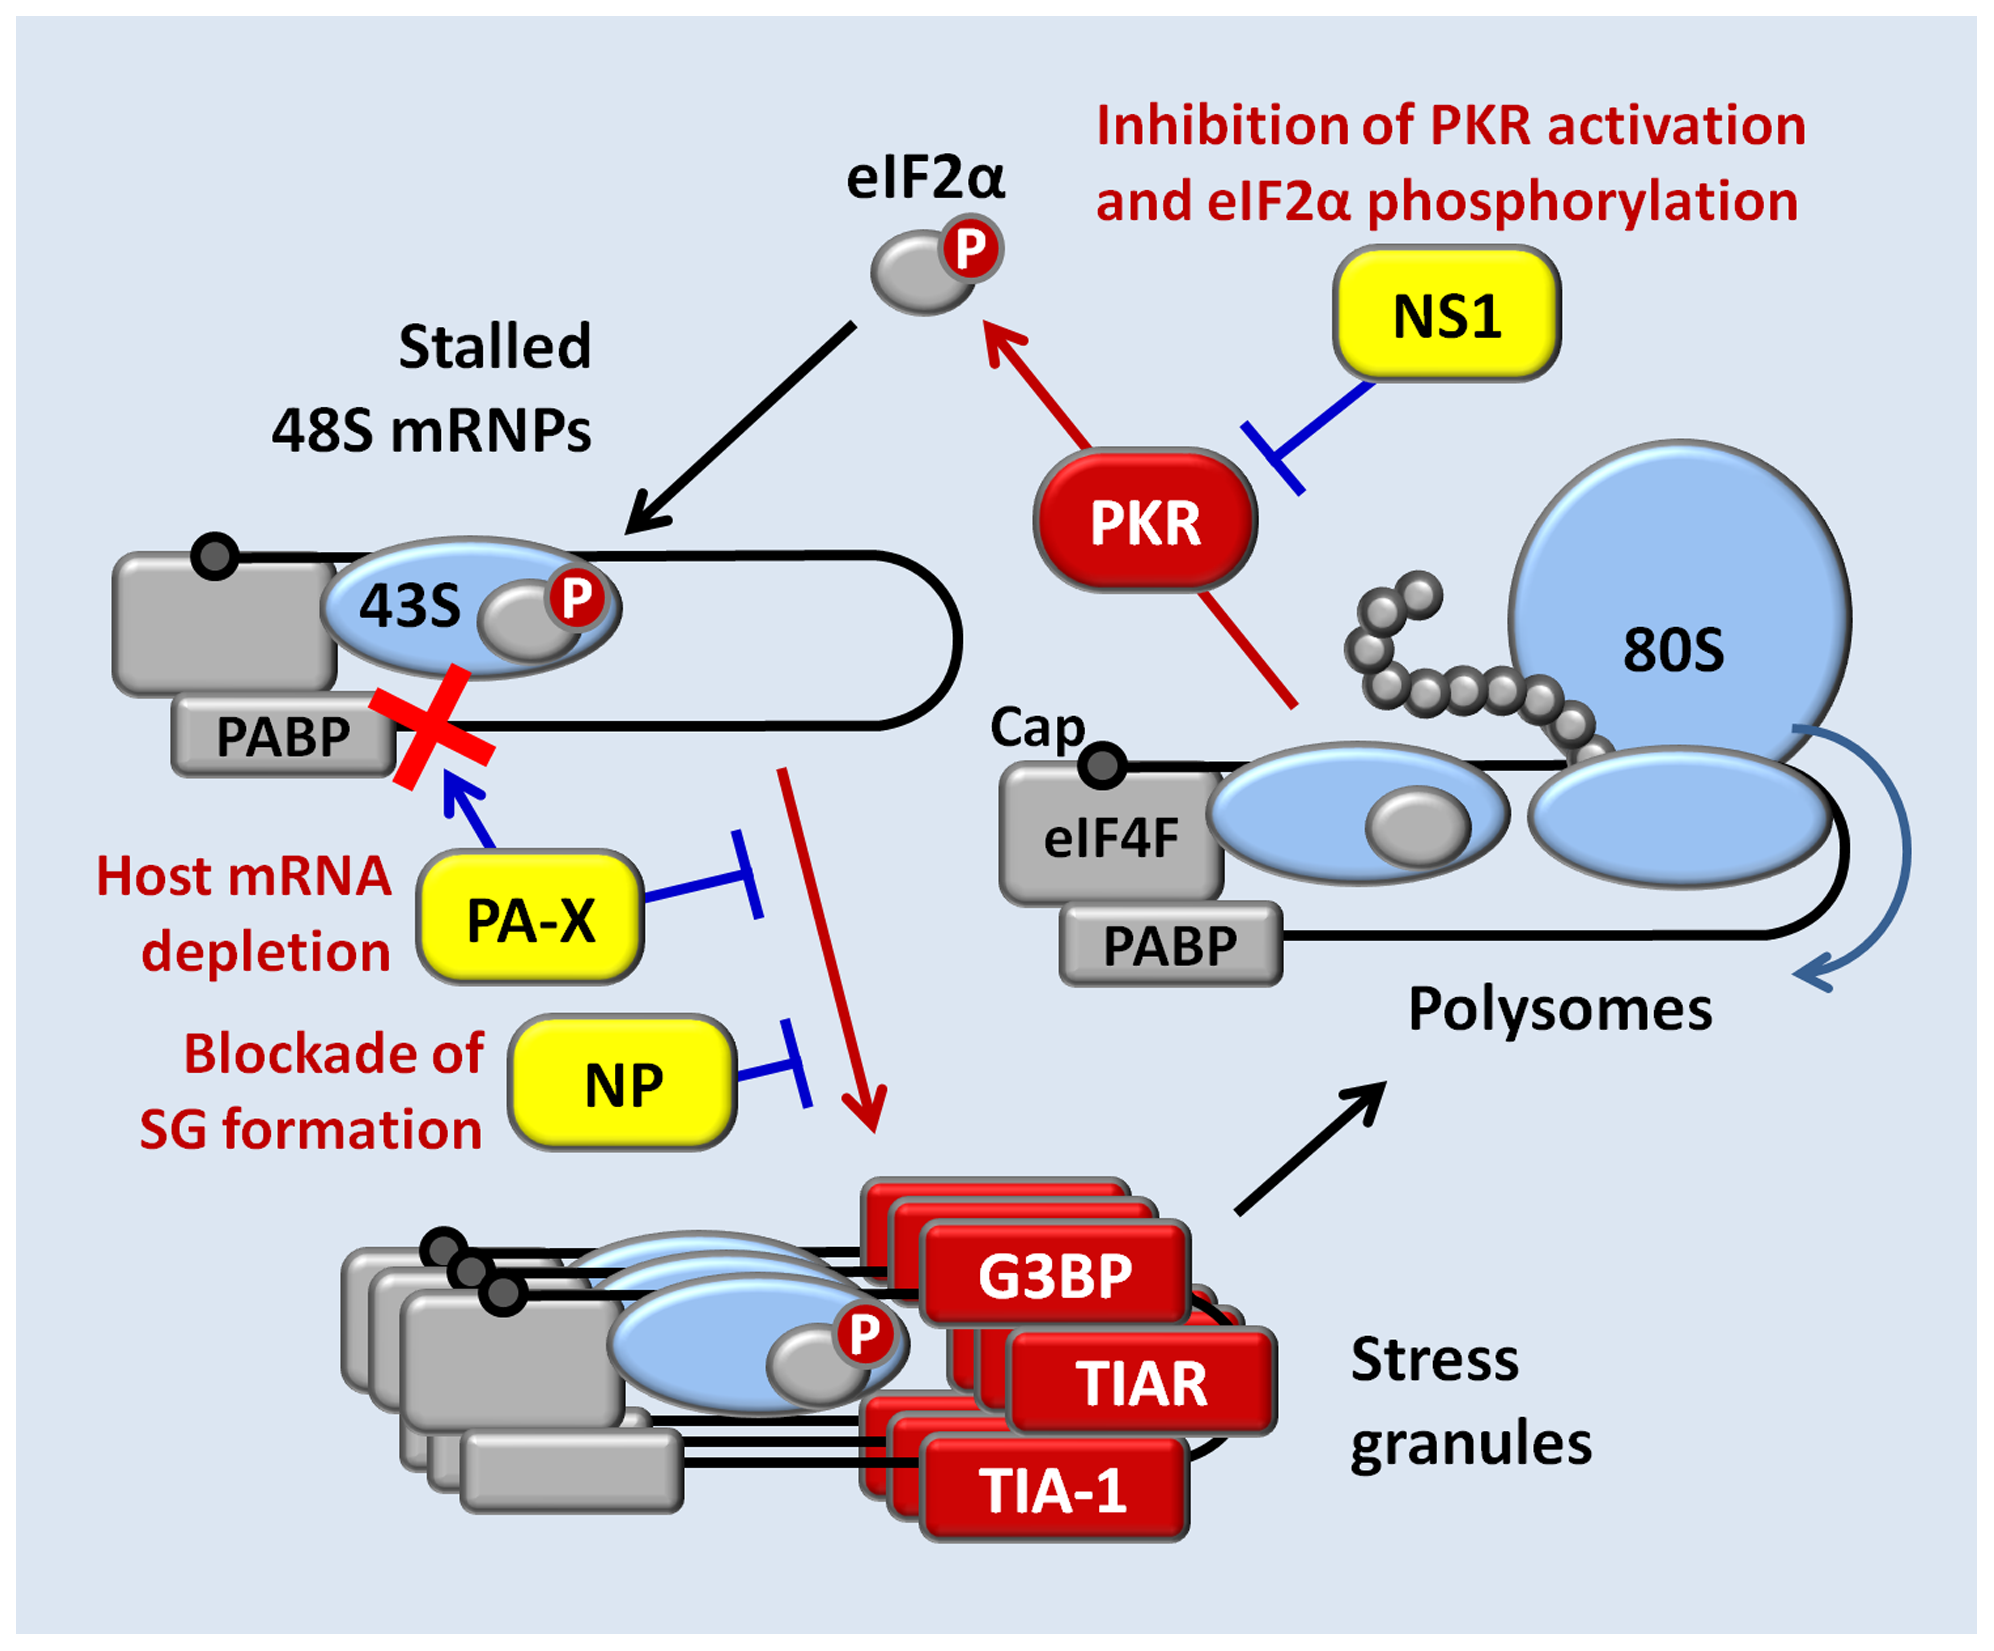 A model for concerted action of NS1, NP, and PA-X proteins in the inhibition of translation arrest and SG formation in influenza A virus-infected cells.